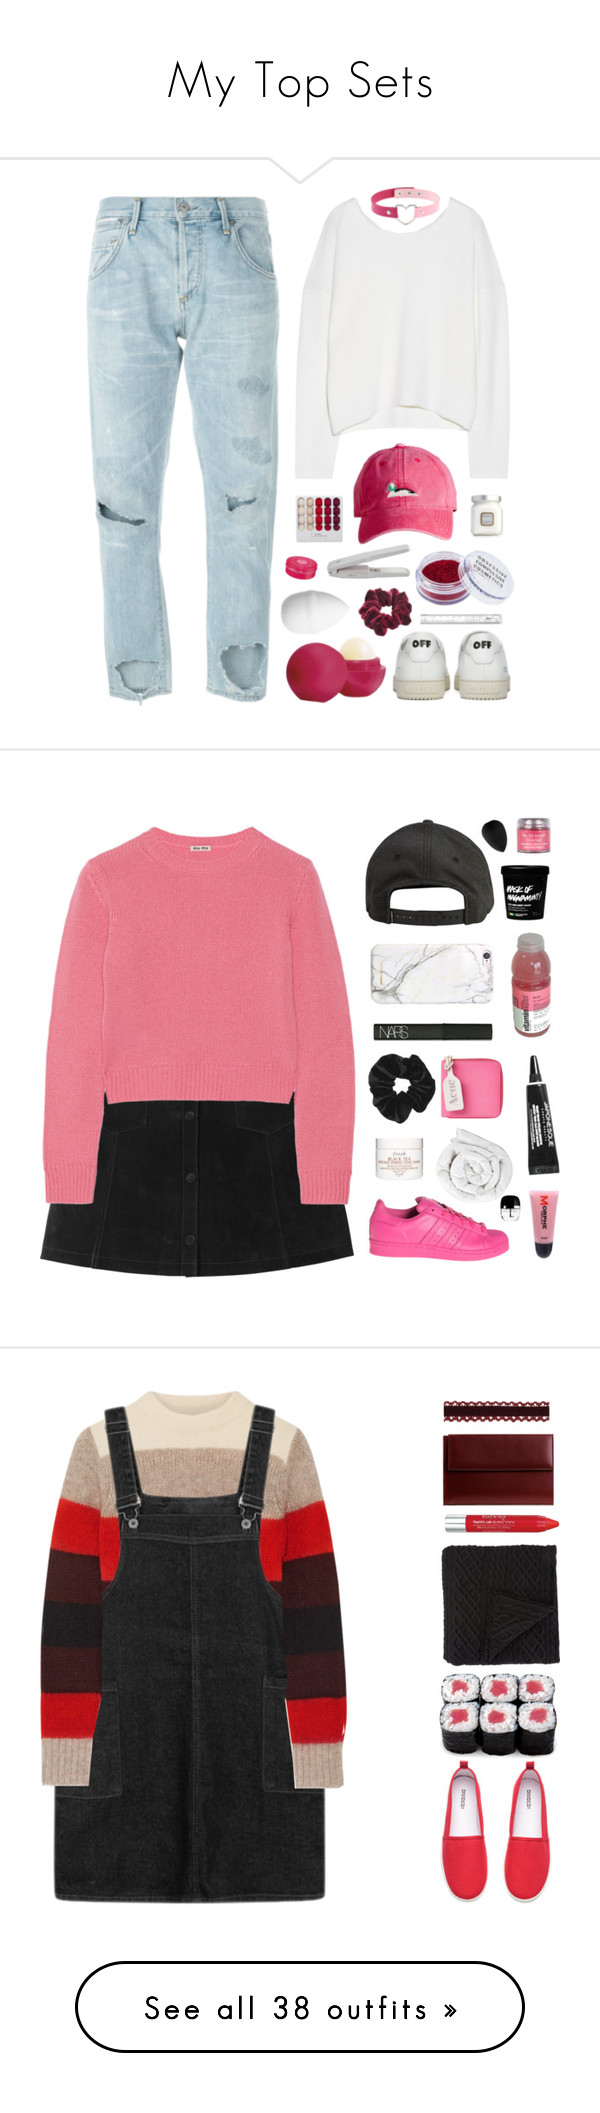 """My Top Sets"" by amazing-abby ❤ liked on Polyvore featuring Citizens of Humanity, Helmut Lang, H&M, Eos, Wild Pair, Harding-Lane, Off-White, Obsessive Compulsive Cosmetics, Laura Mercier and L'Occitane"